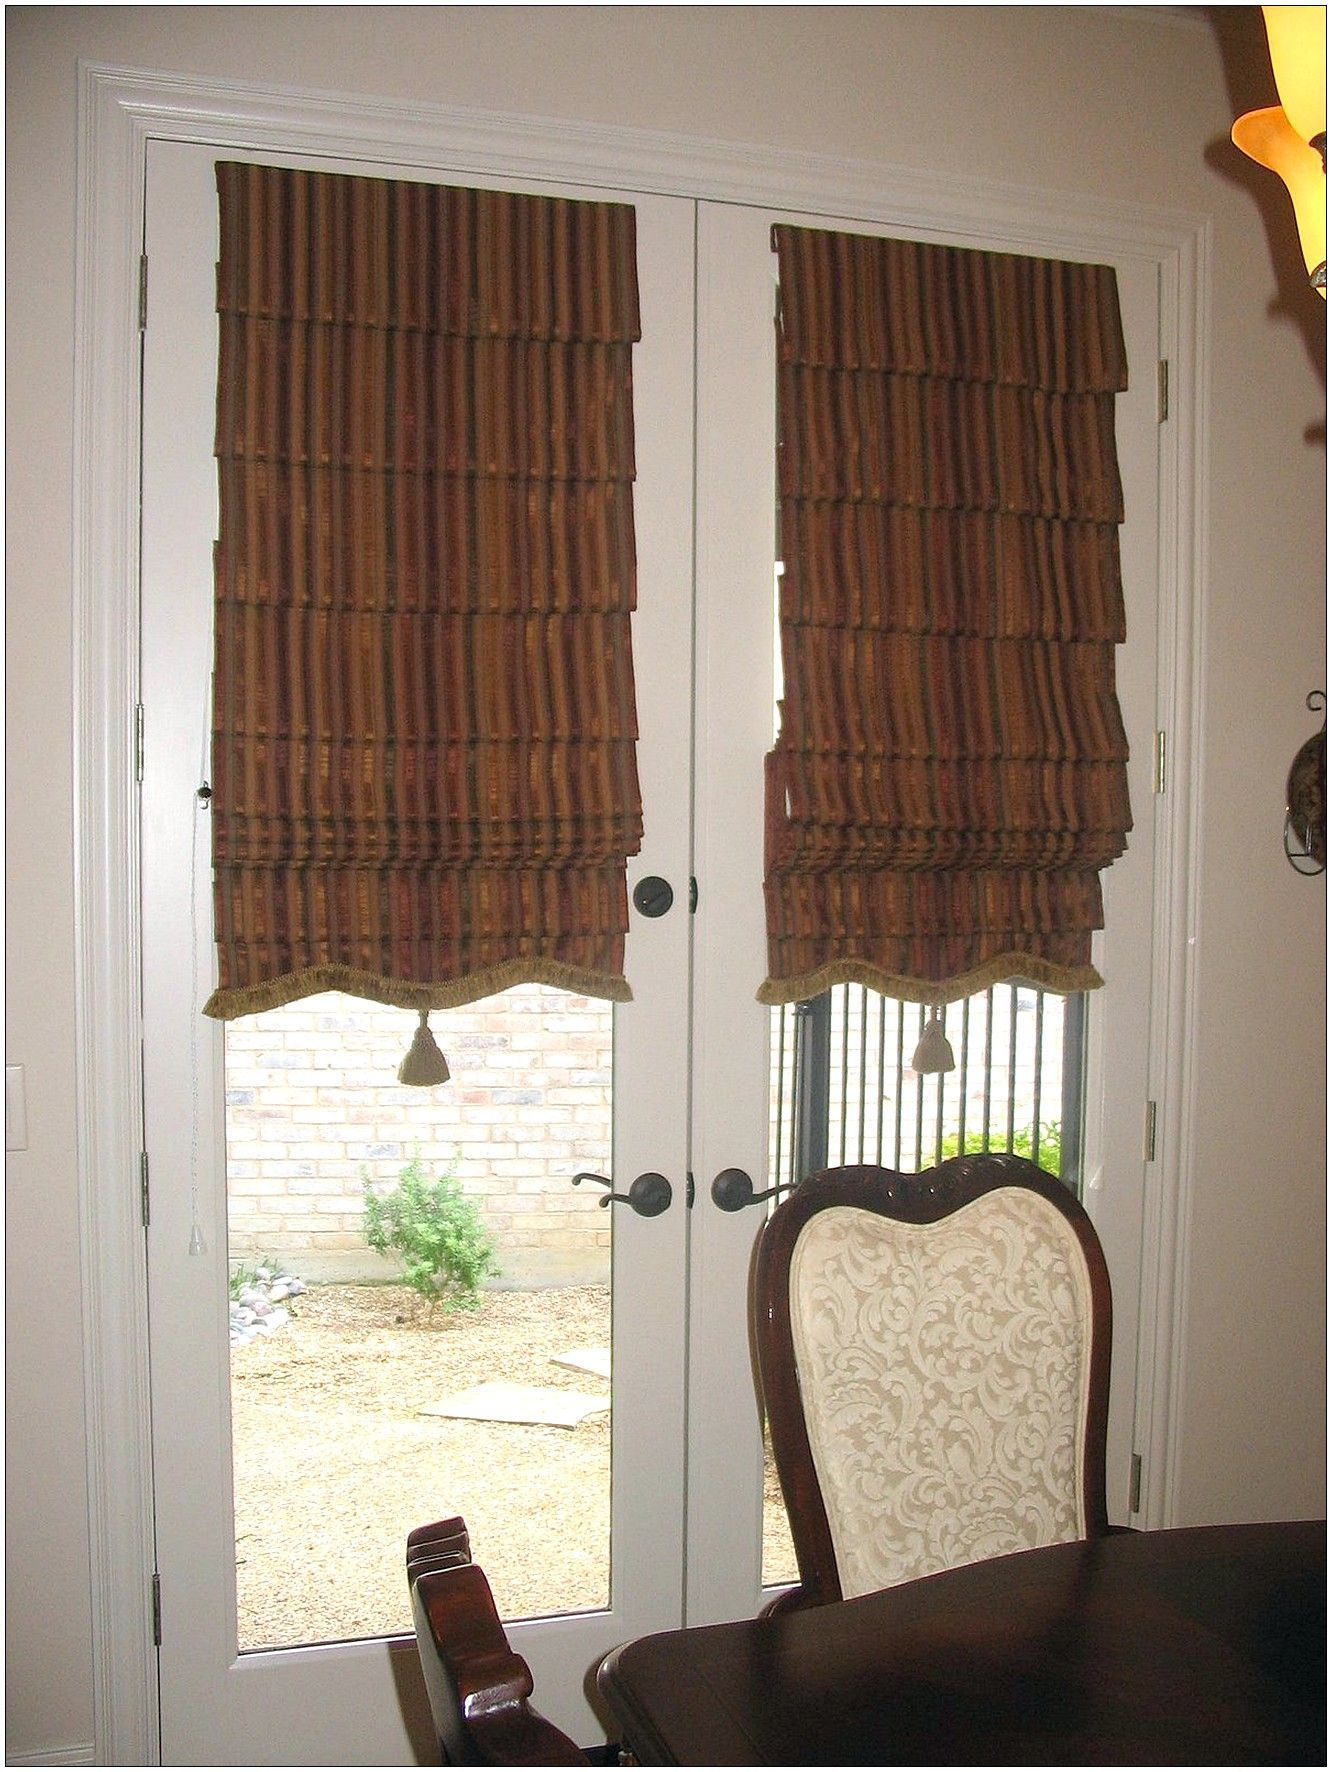 Diy Blinds Online Love The Overstuffed Window Seat Cushion And The Relaxed